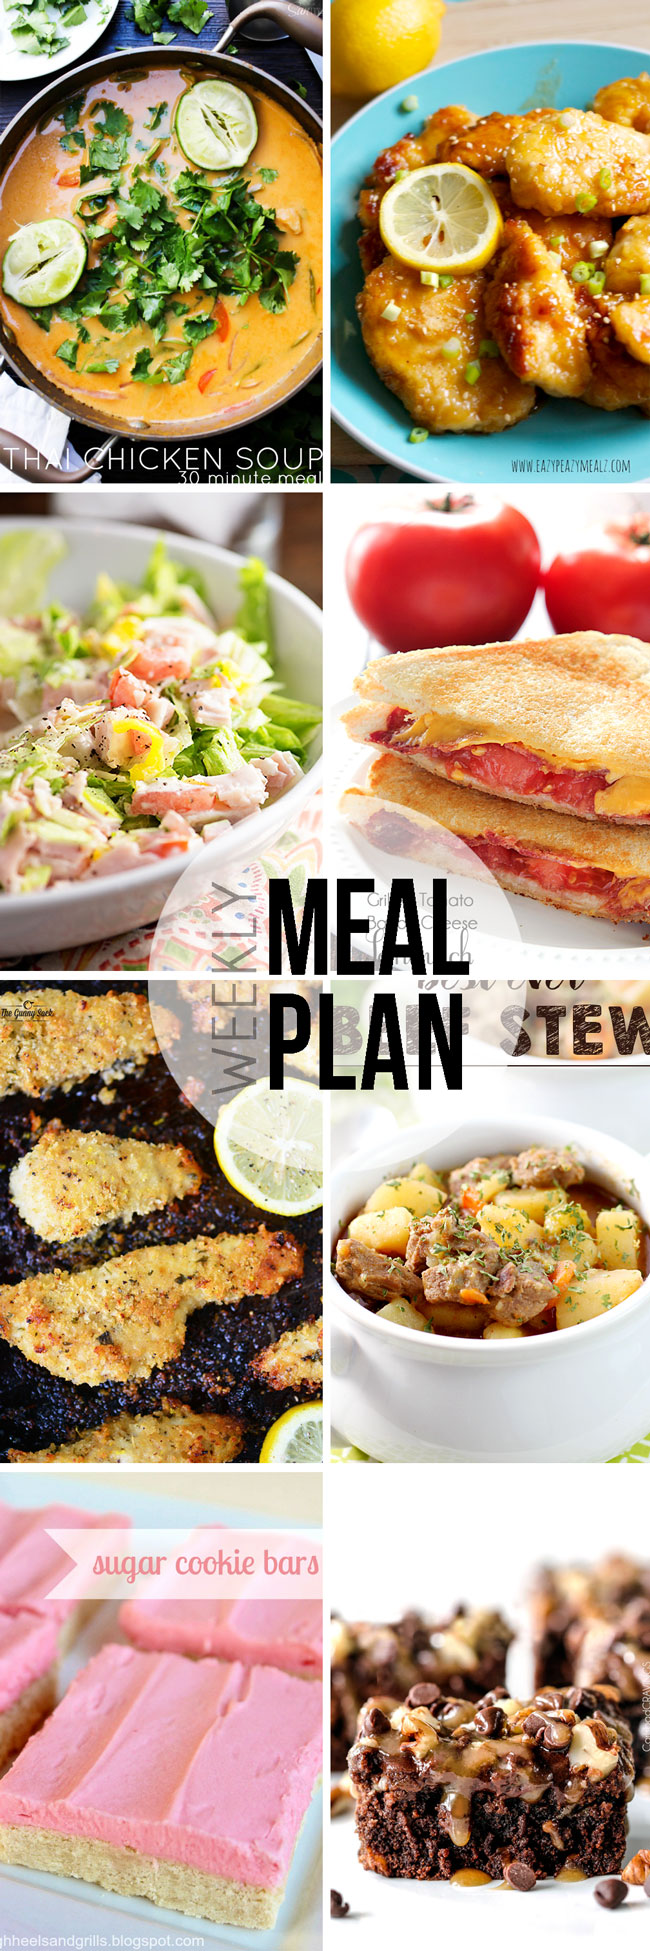 Easy meal plan full of delicious recipes